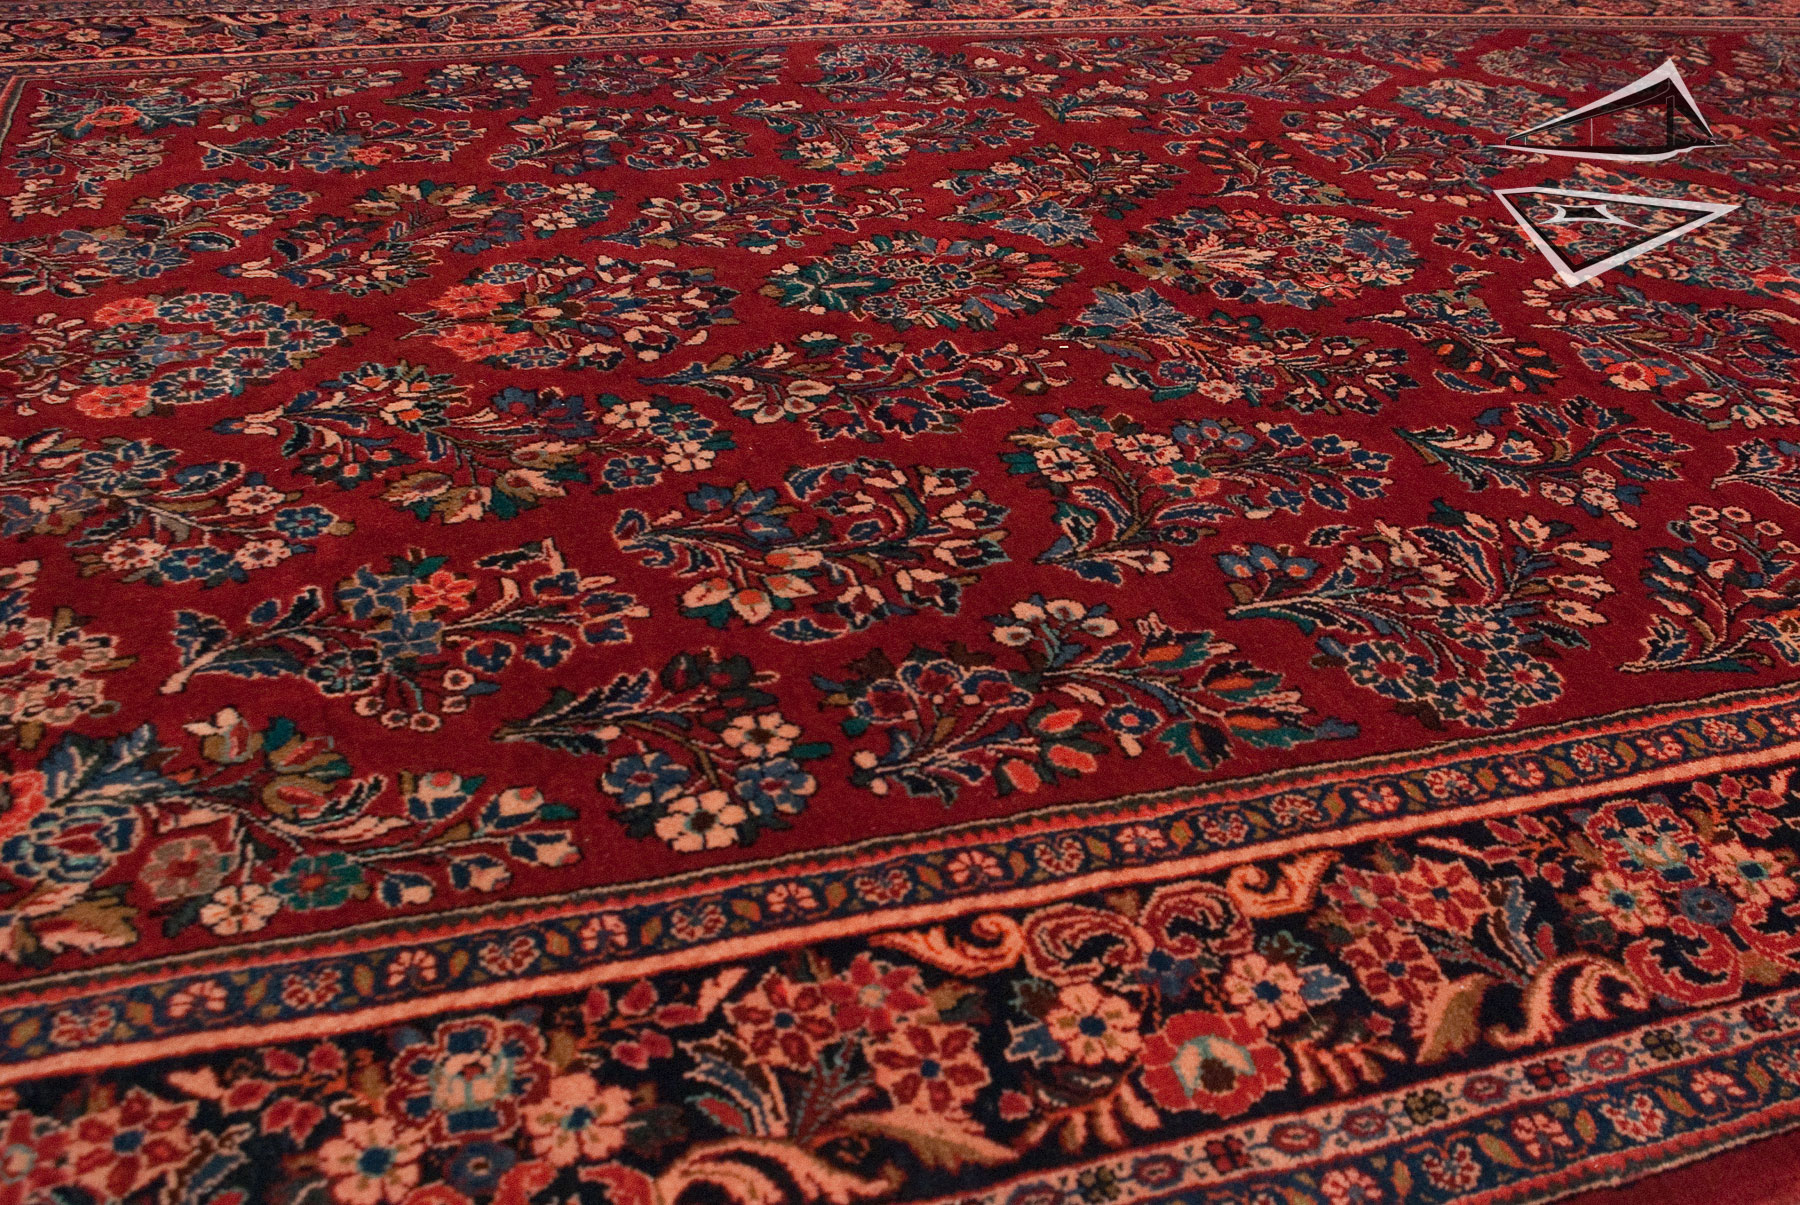 Cheap Shag Carpet Images. Bedroom Admirable Great King Shag Area Rugs For Cover . 39 Wondrous ...